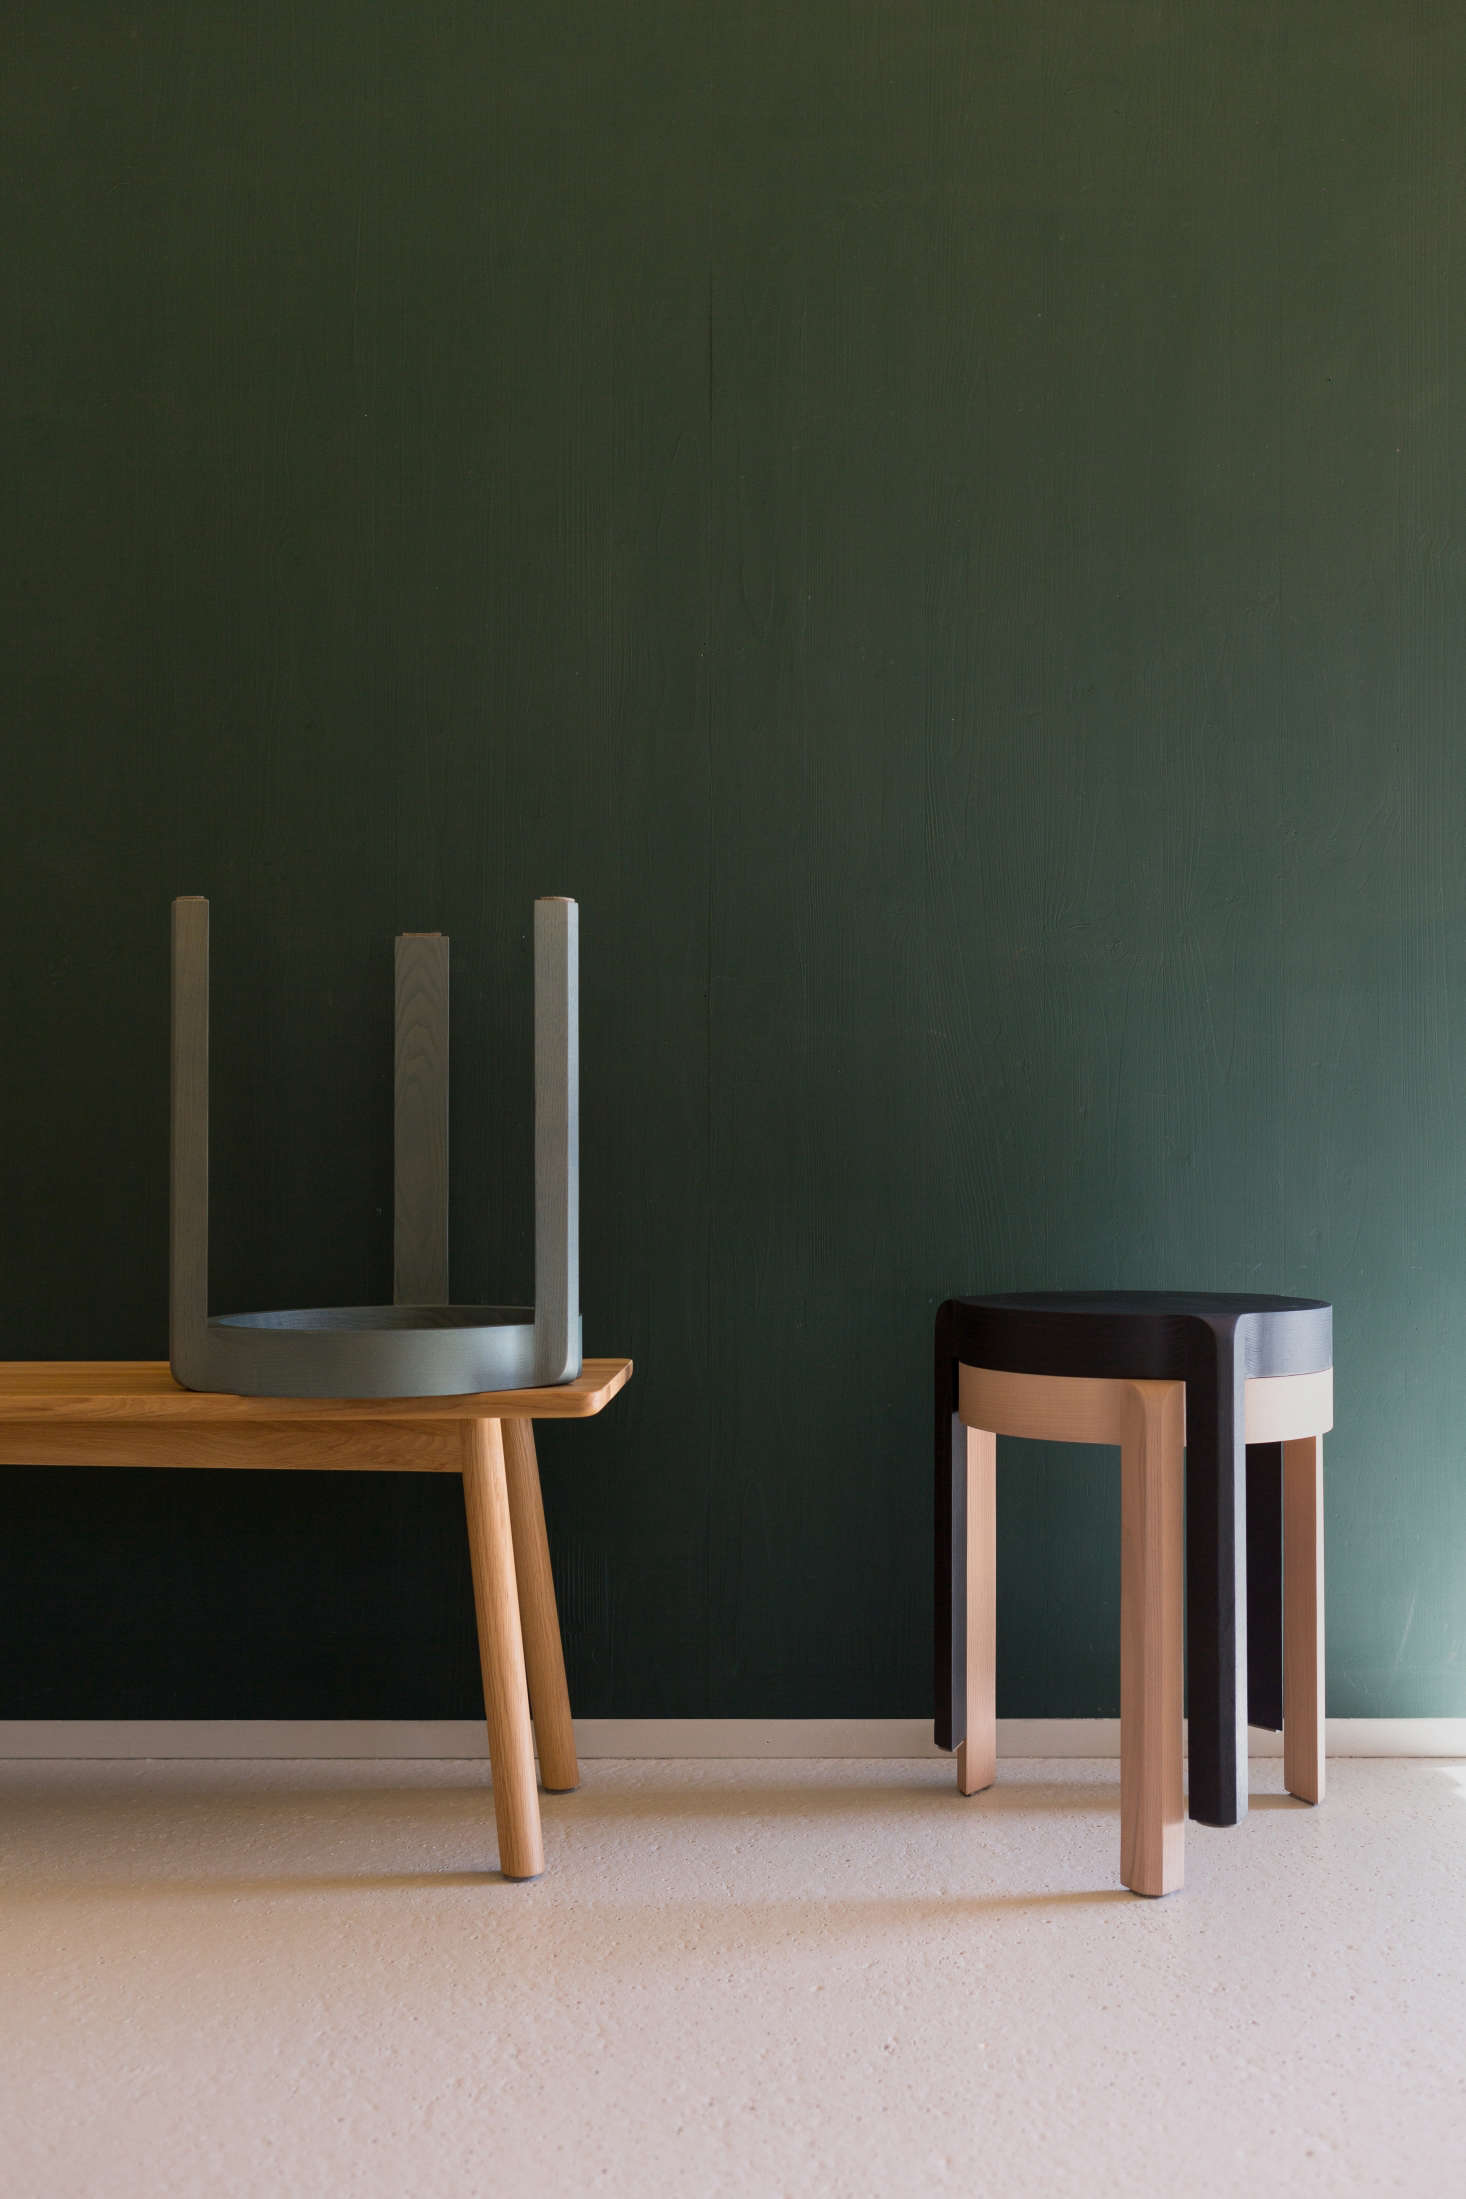 The stools have steam-bent legs and are designed to stack.